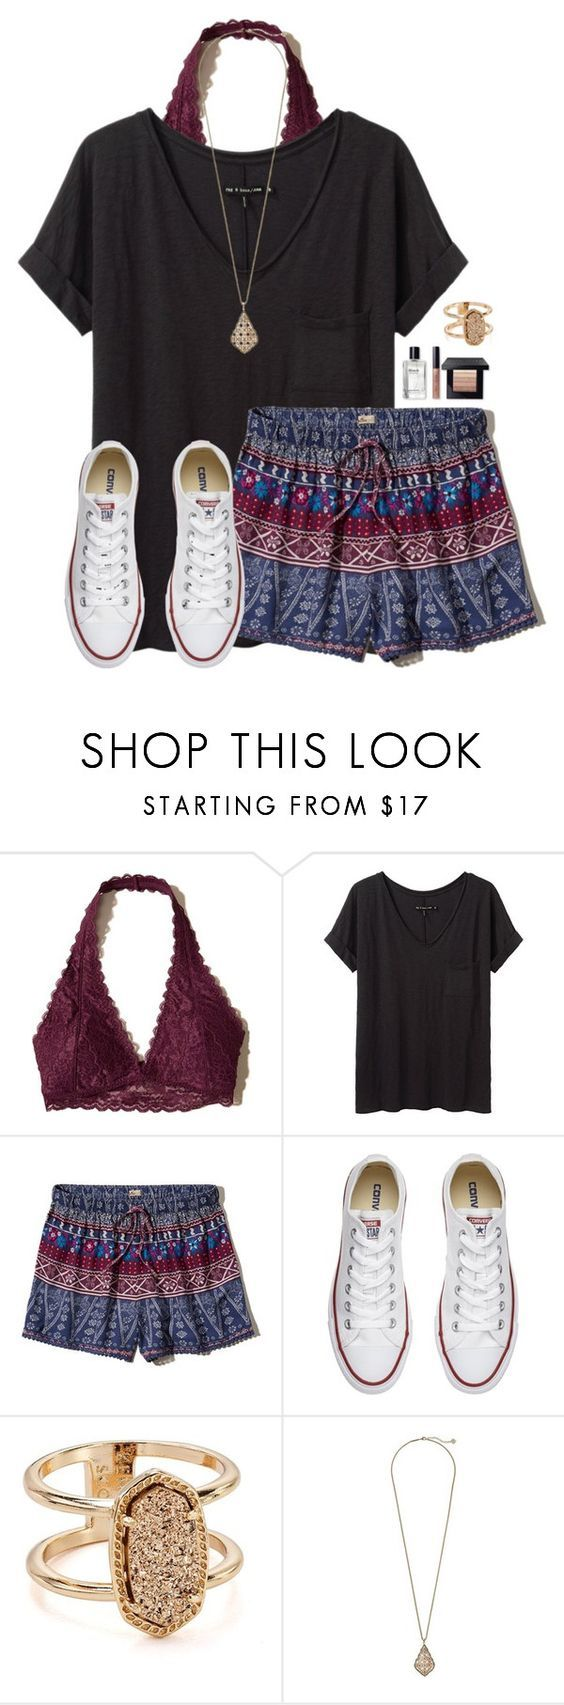 """""""I love sleeping in late"""" by victoriaann34 on Polyvore featuring Hollister Co., rag & bone/JEAN, Converse, Kendra Scott and Bobbi Brown Cosmetics"""